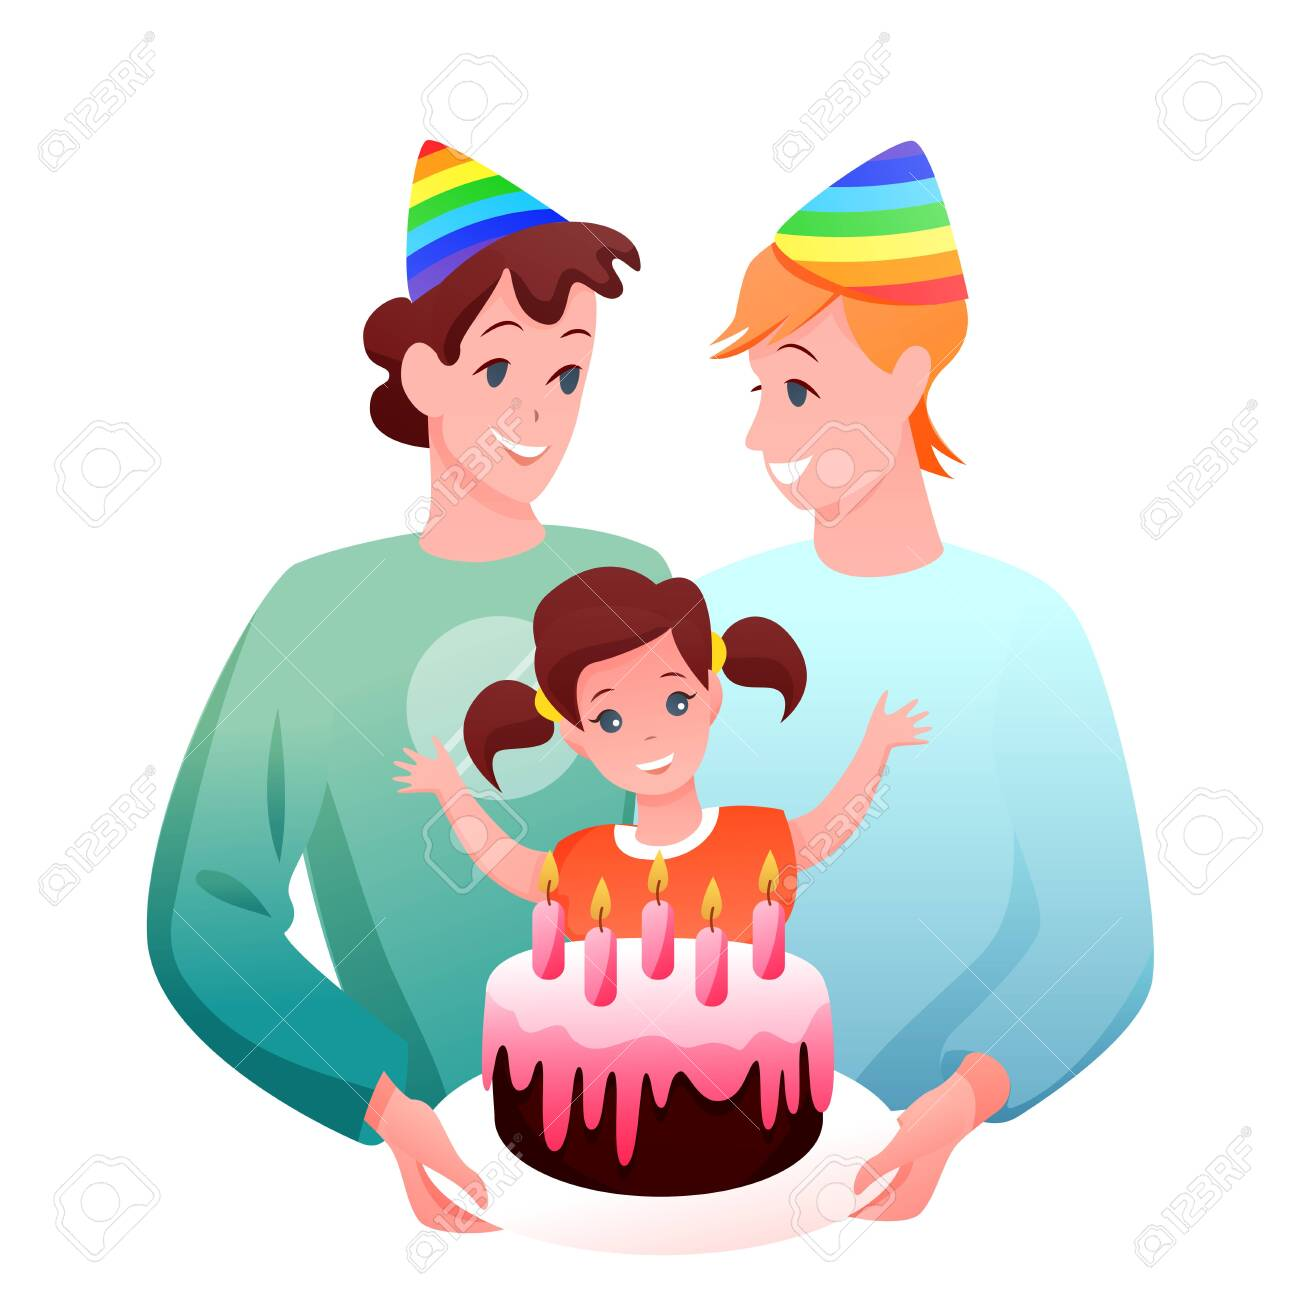 Gay LGBT family celebrate vector illustration. Cartoon flat happy two father characters celebrating birthday of daughter girl with gift chocolate cake, kid birthdate celebration isolated on white - 151954141